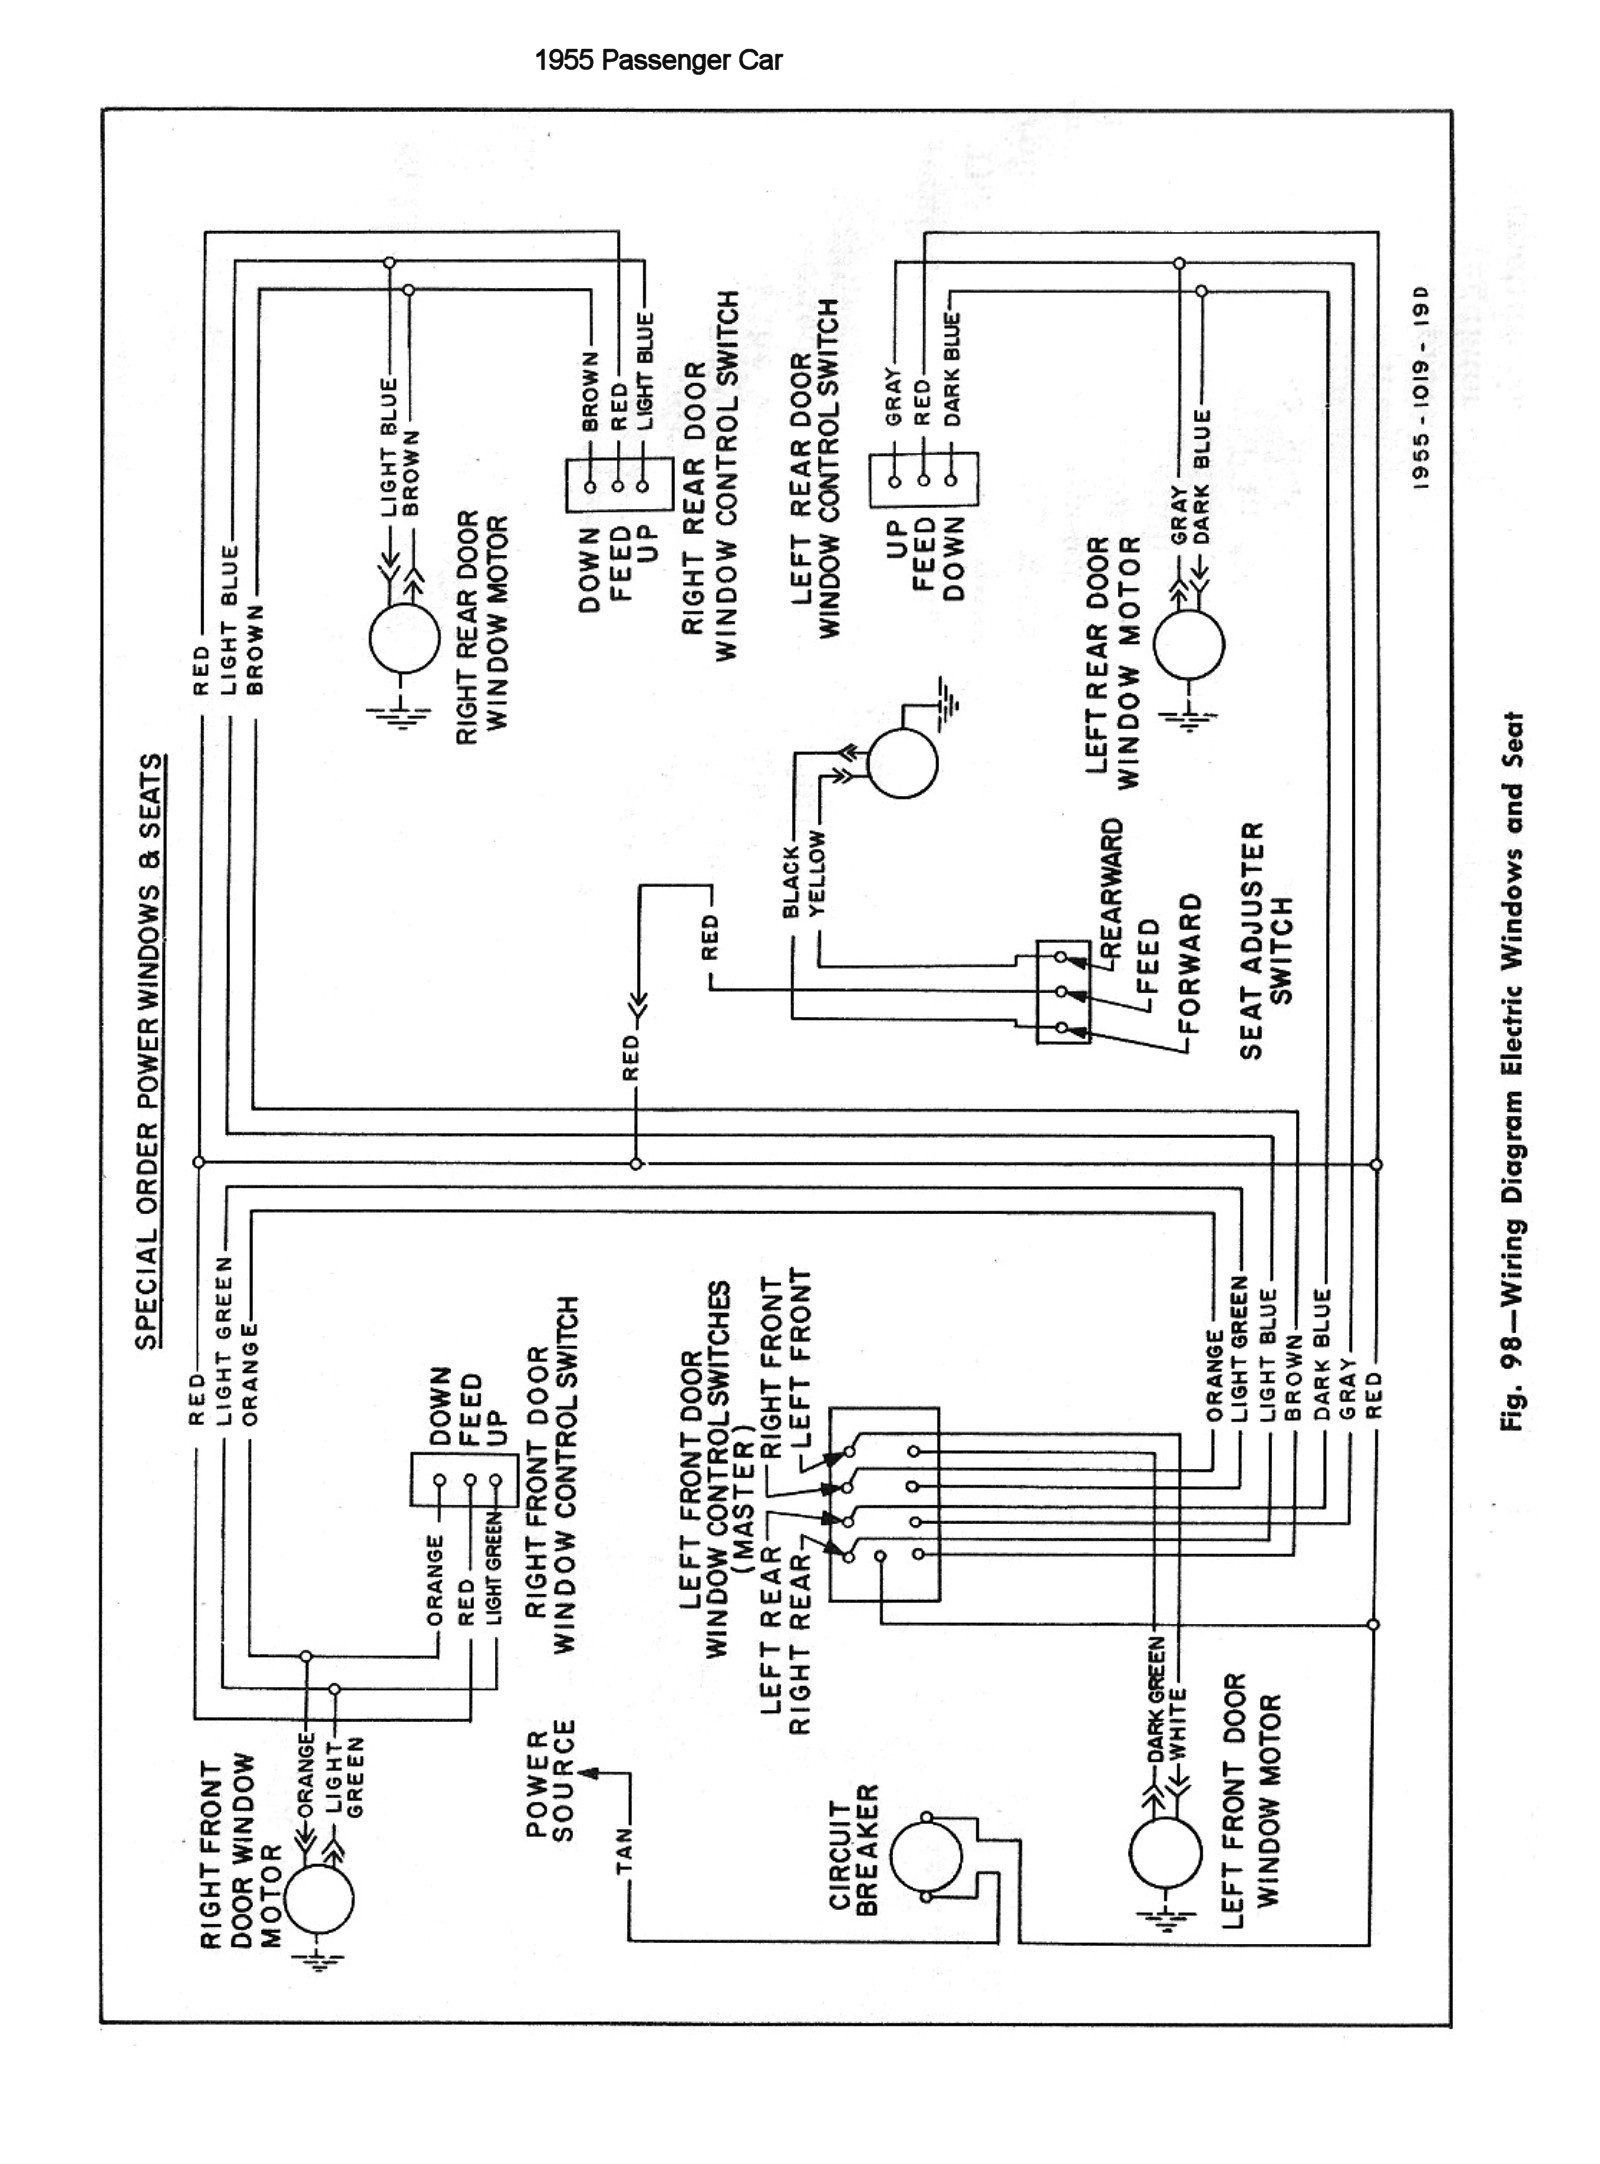 Wiring Diagram Jeep Cj3b